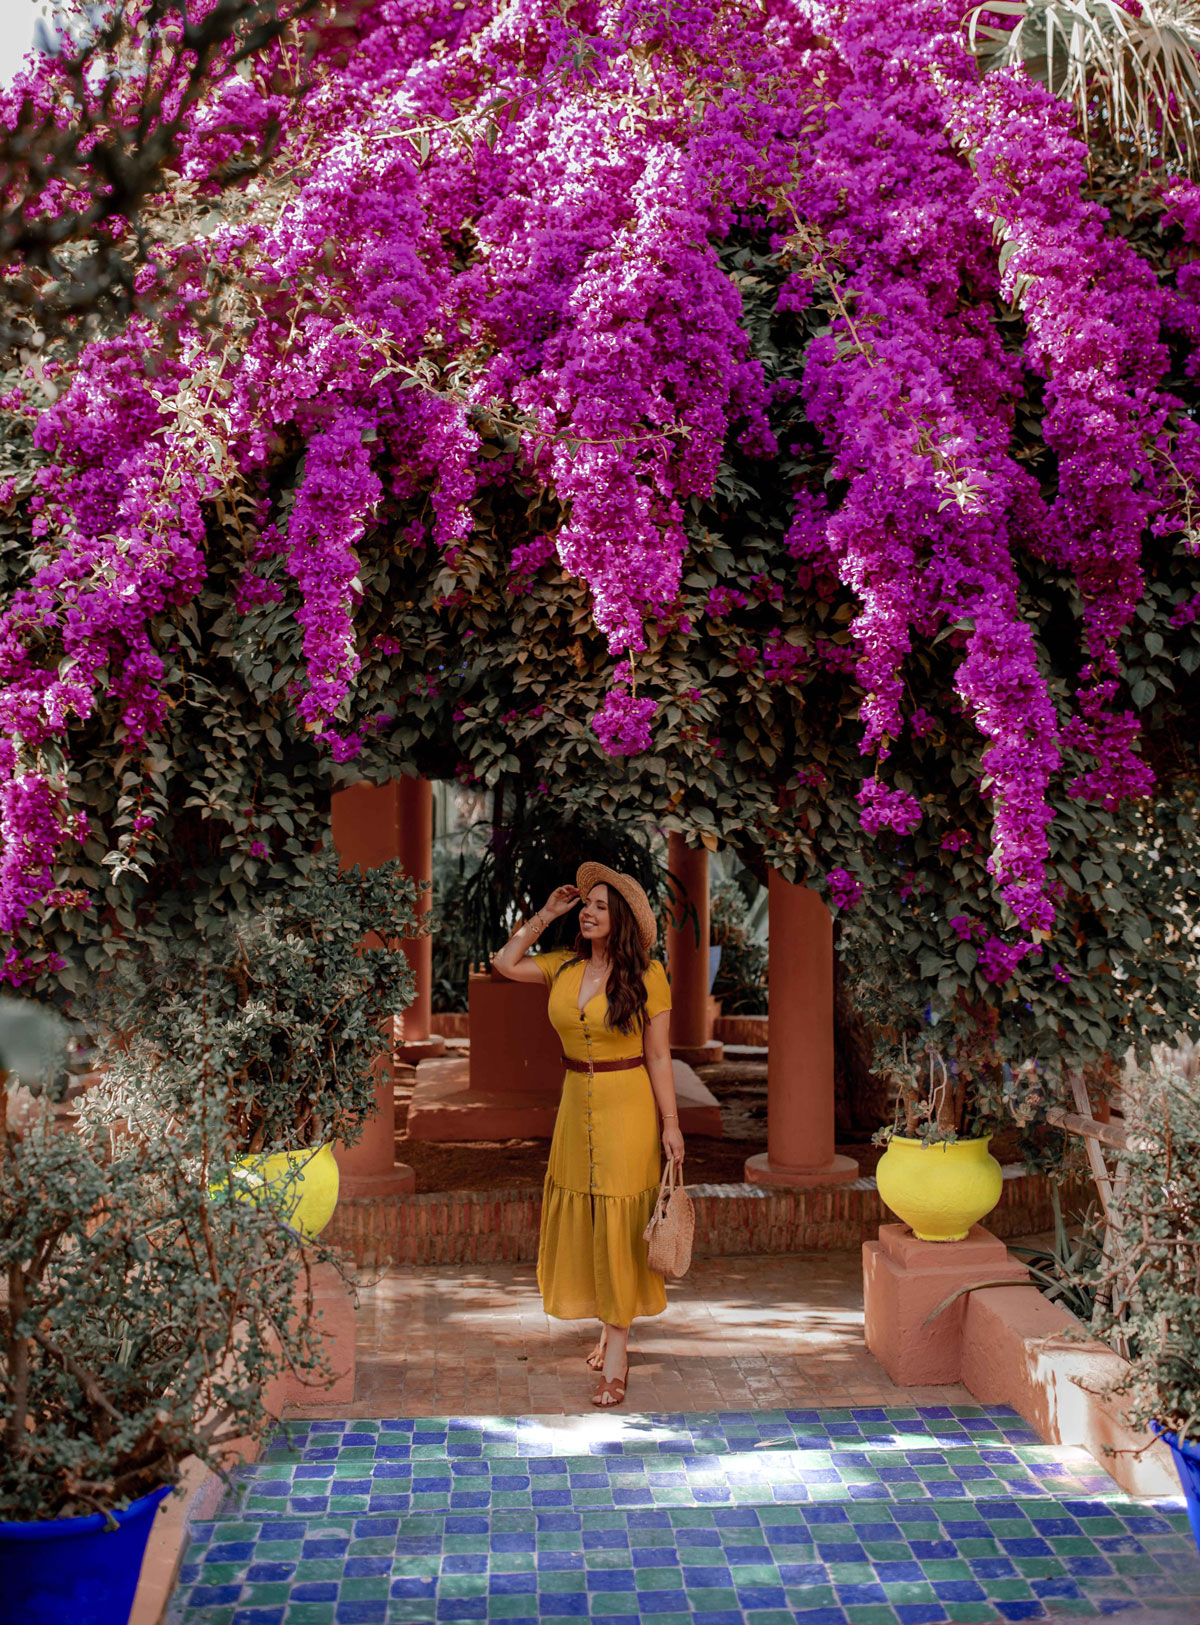 Top-things-to-do-in-marrakech-Bucket-list-kelseyinlondon-Kelsey-Heinrichs--What-to-do-in-marrakech--Where-to-go-in-marrakech-top-places-in-marrakech-le-jardin-majorelle